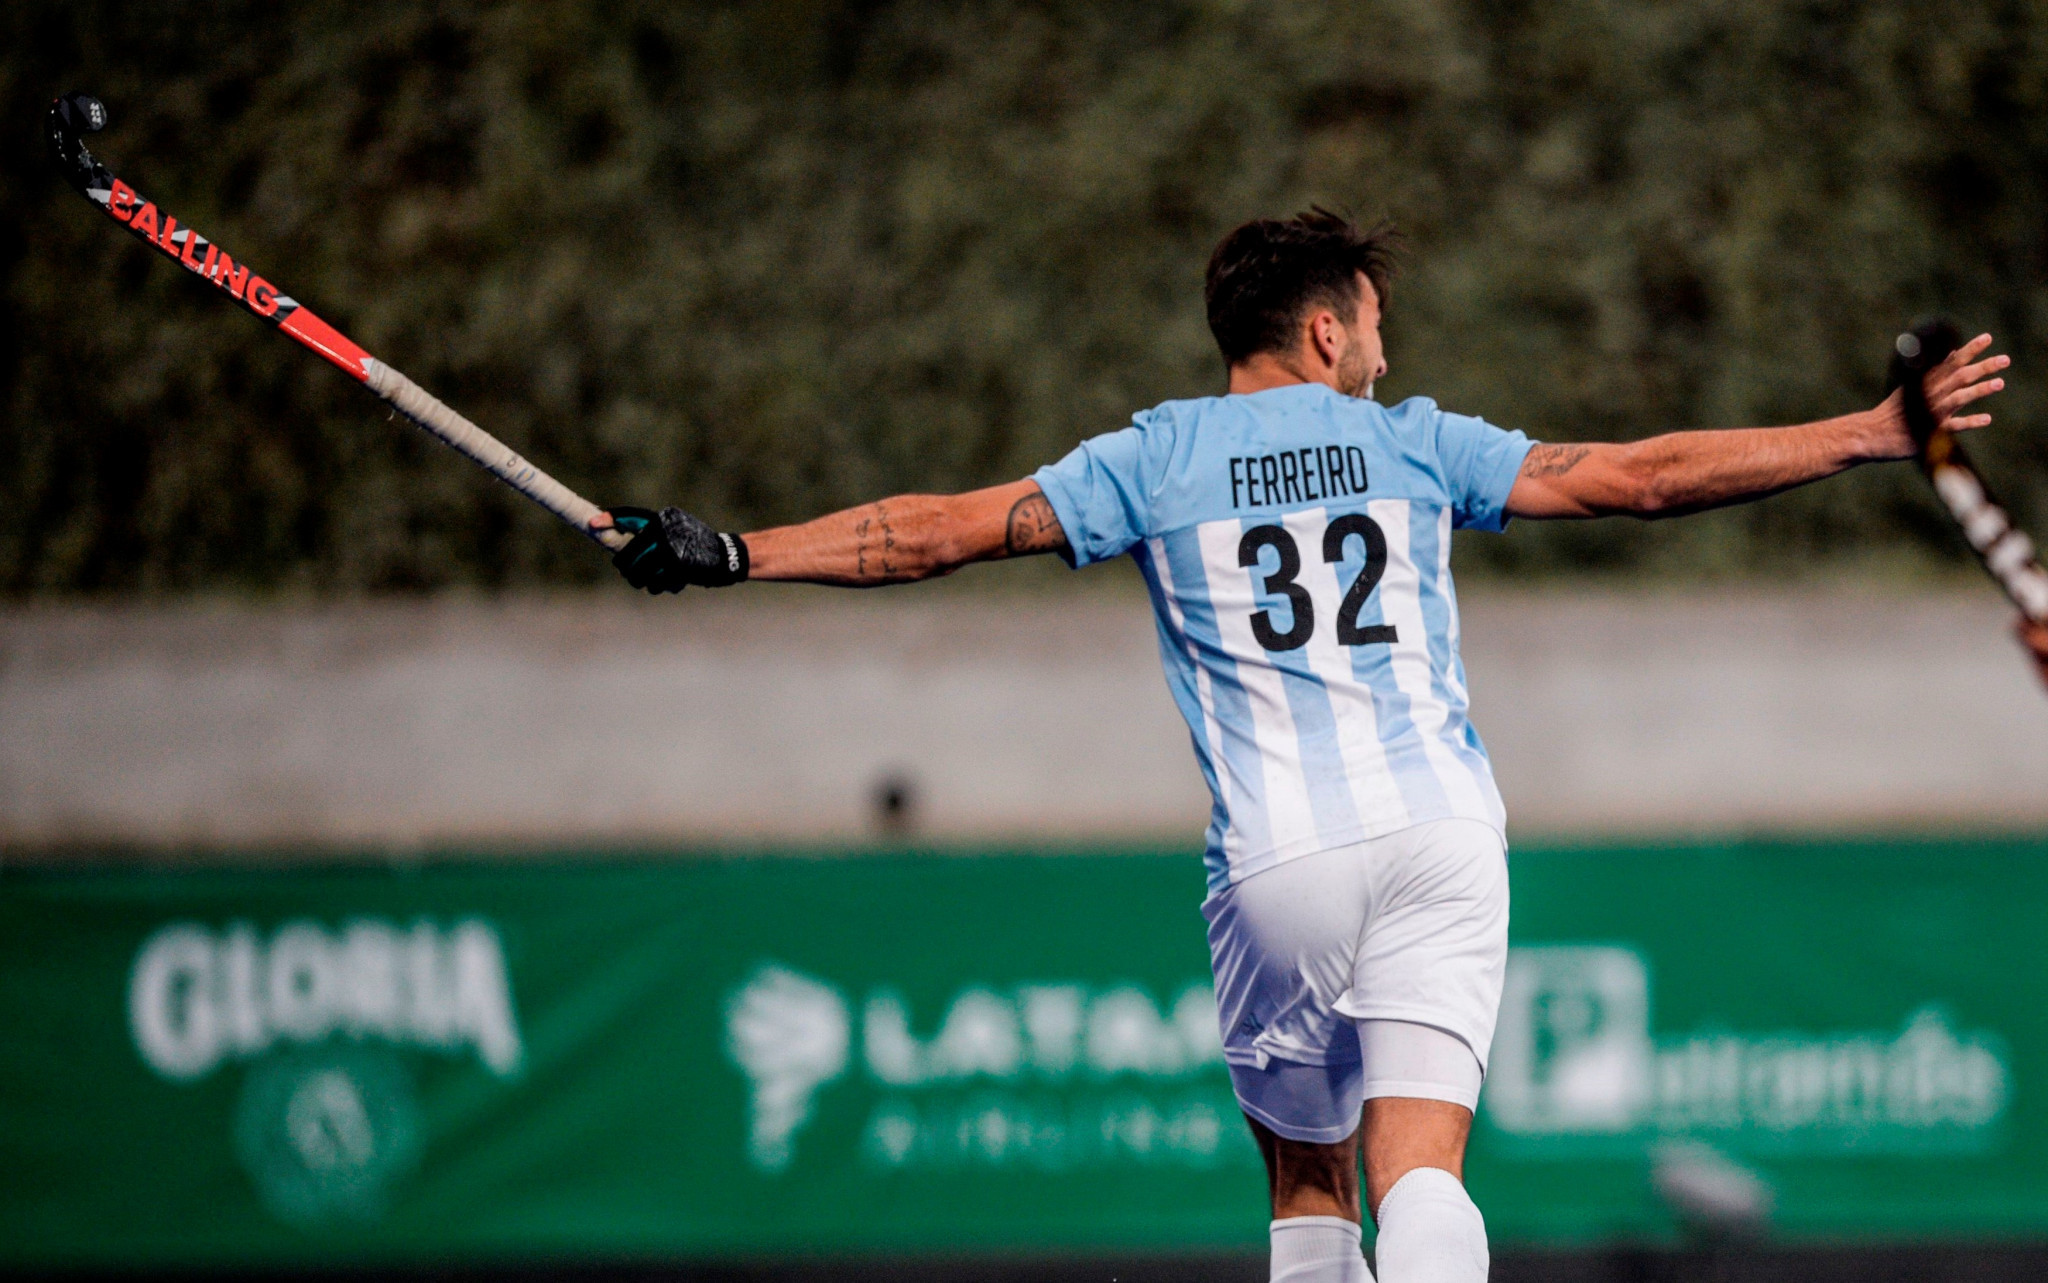 Martin Ferreiro scored twice for Argentina, yet ended up on the losing side ©Getty Images